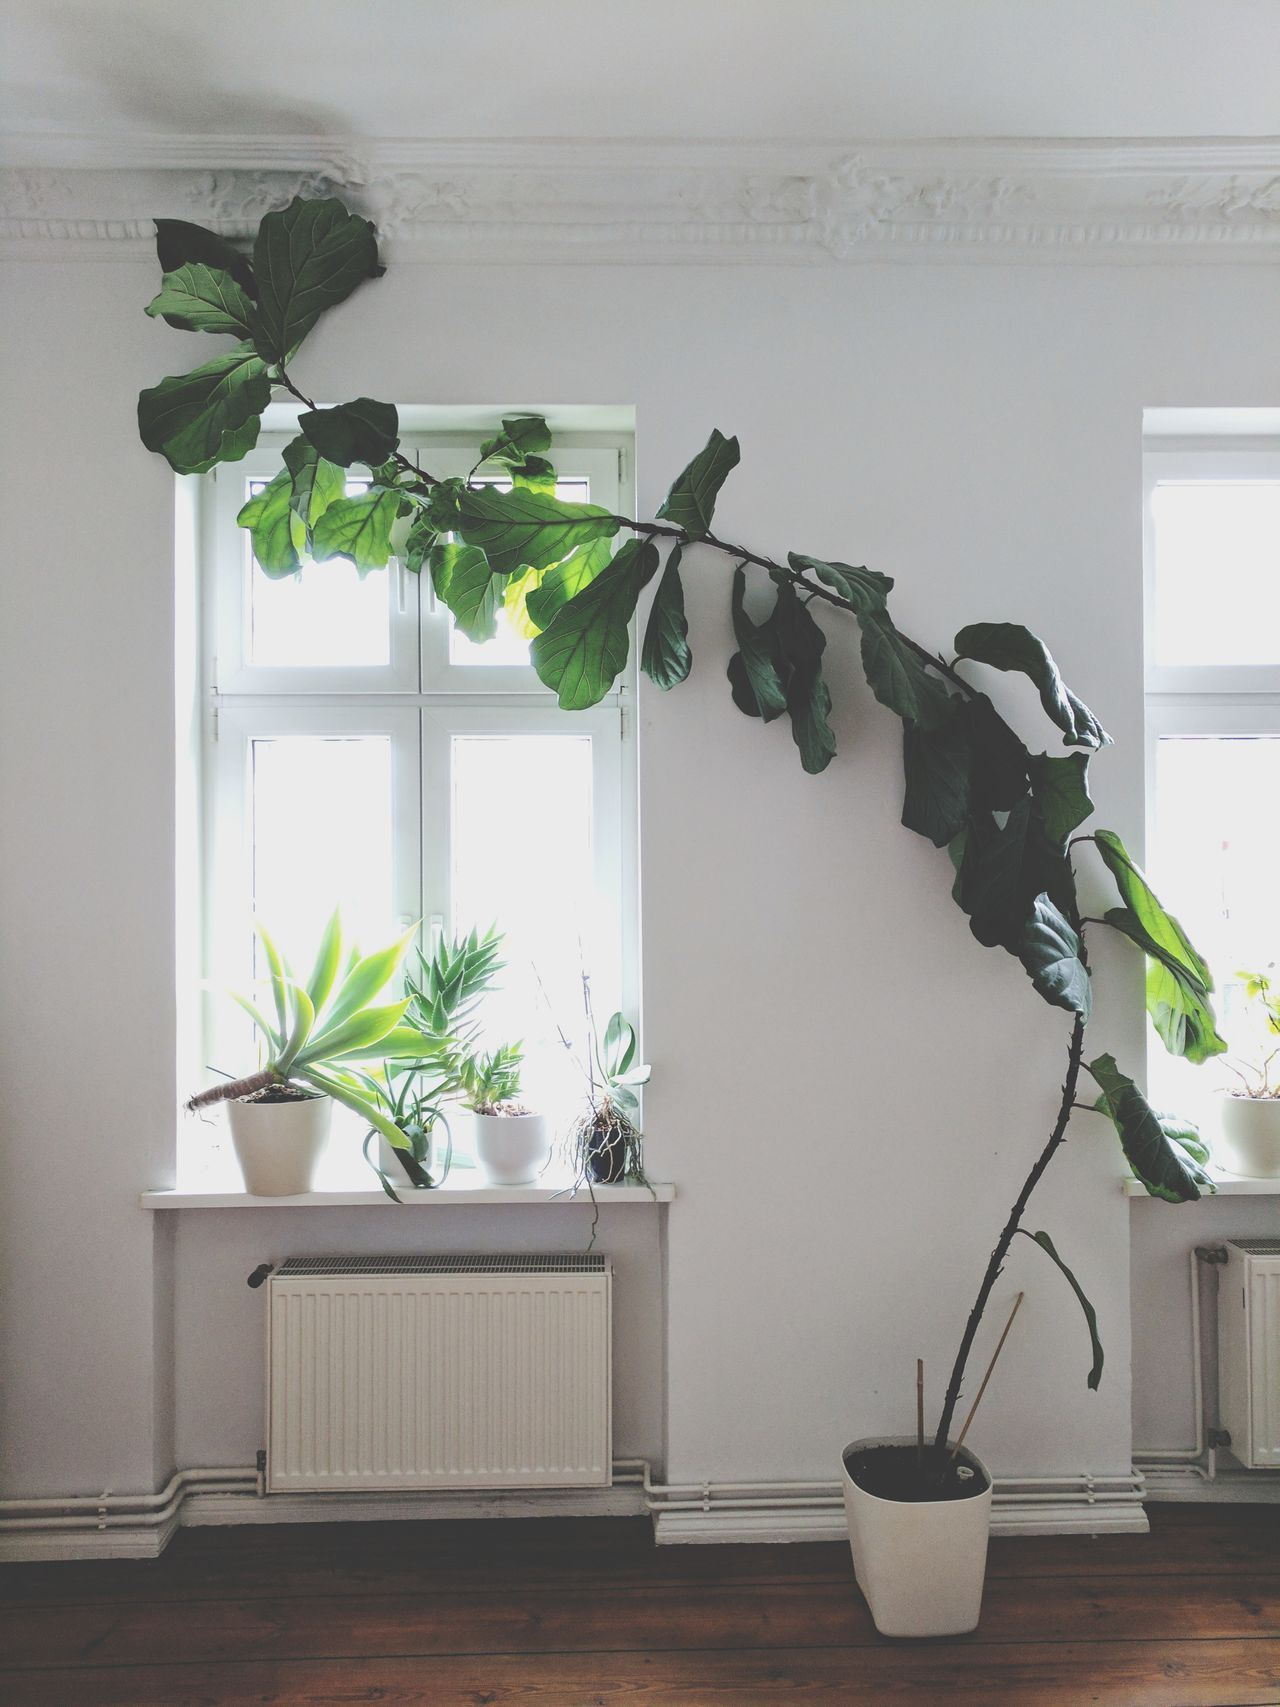 Potted Plant Plant Indoors  Home Interior Window No People Growth Day Living Room Home Showcase Interior Water Nature Tree Greenhouse Freshness Growth